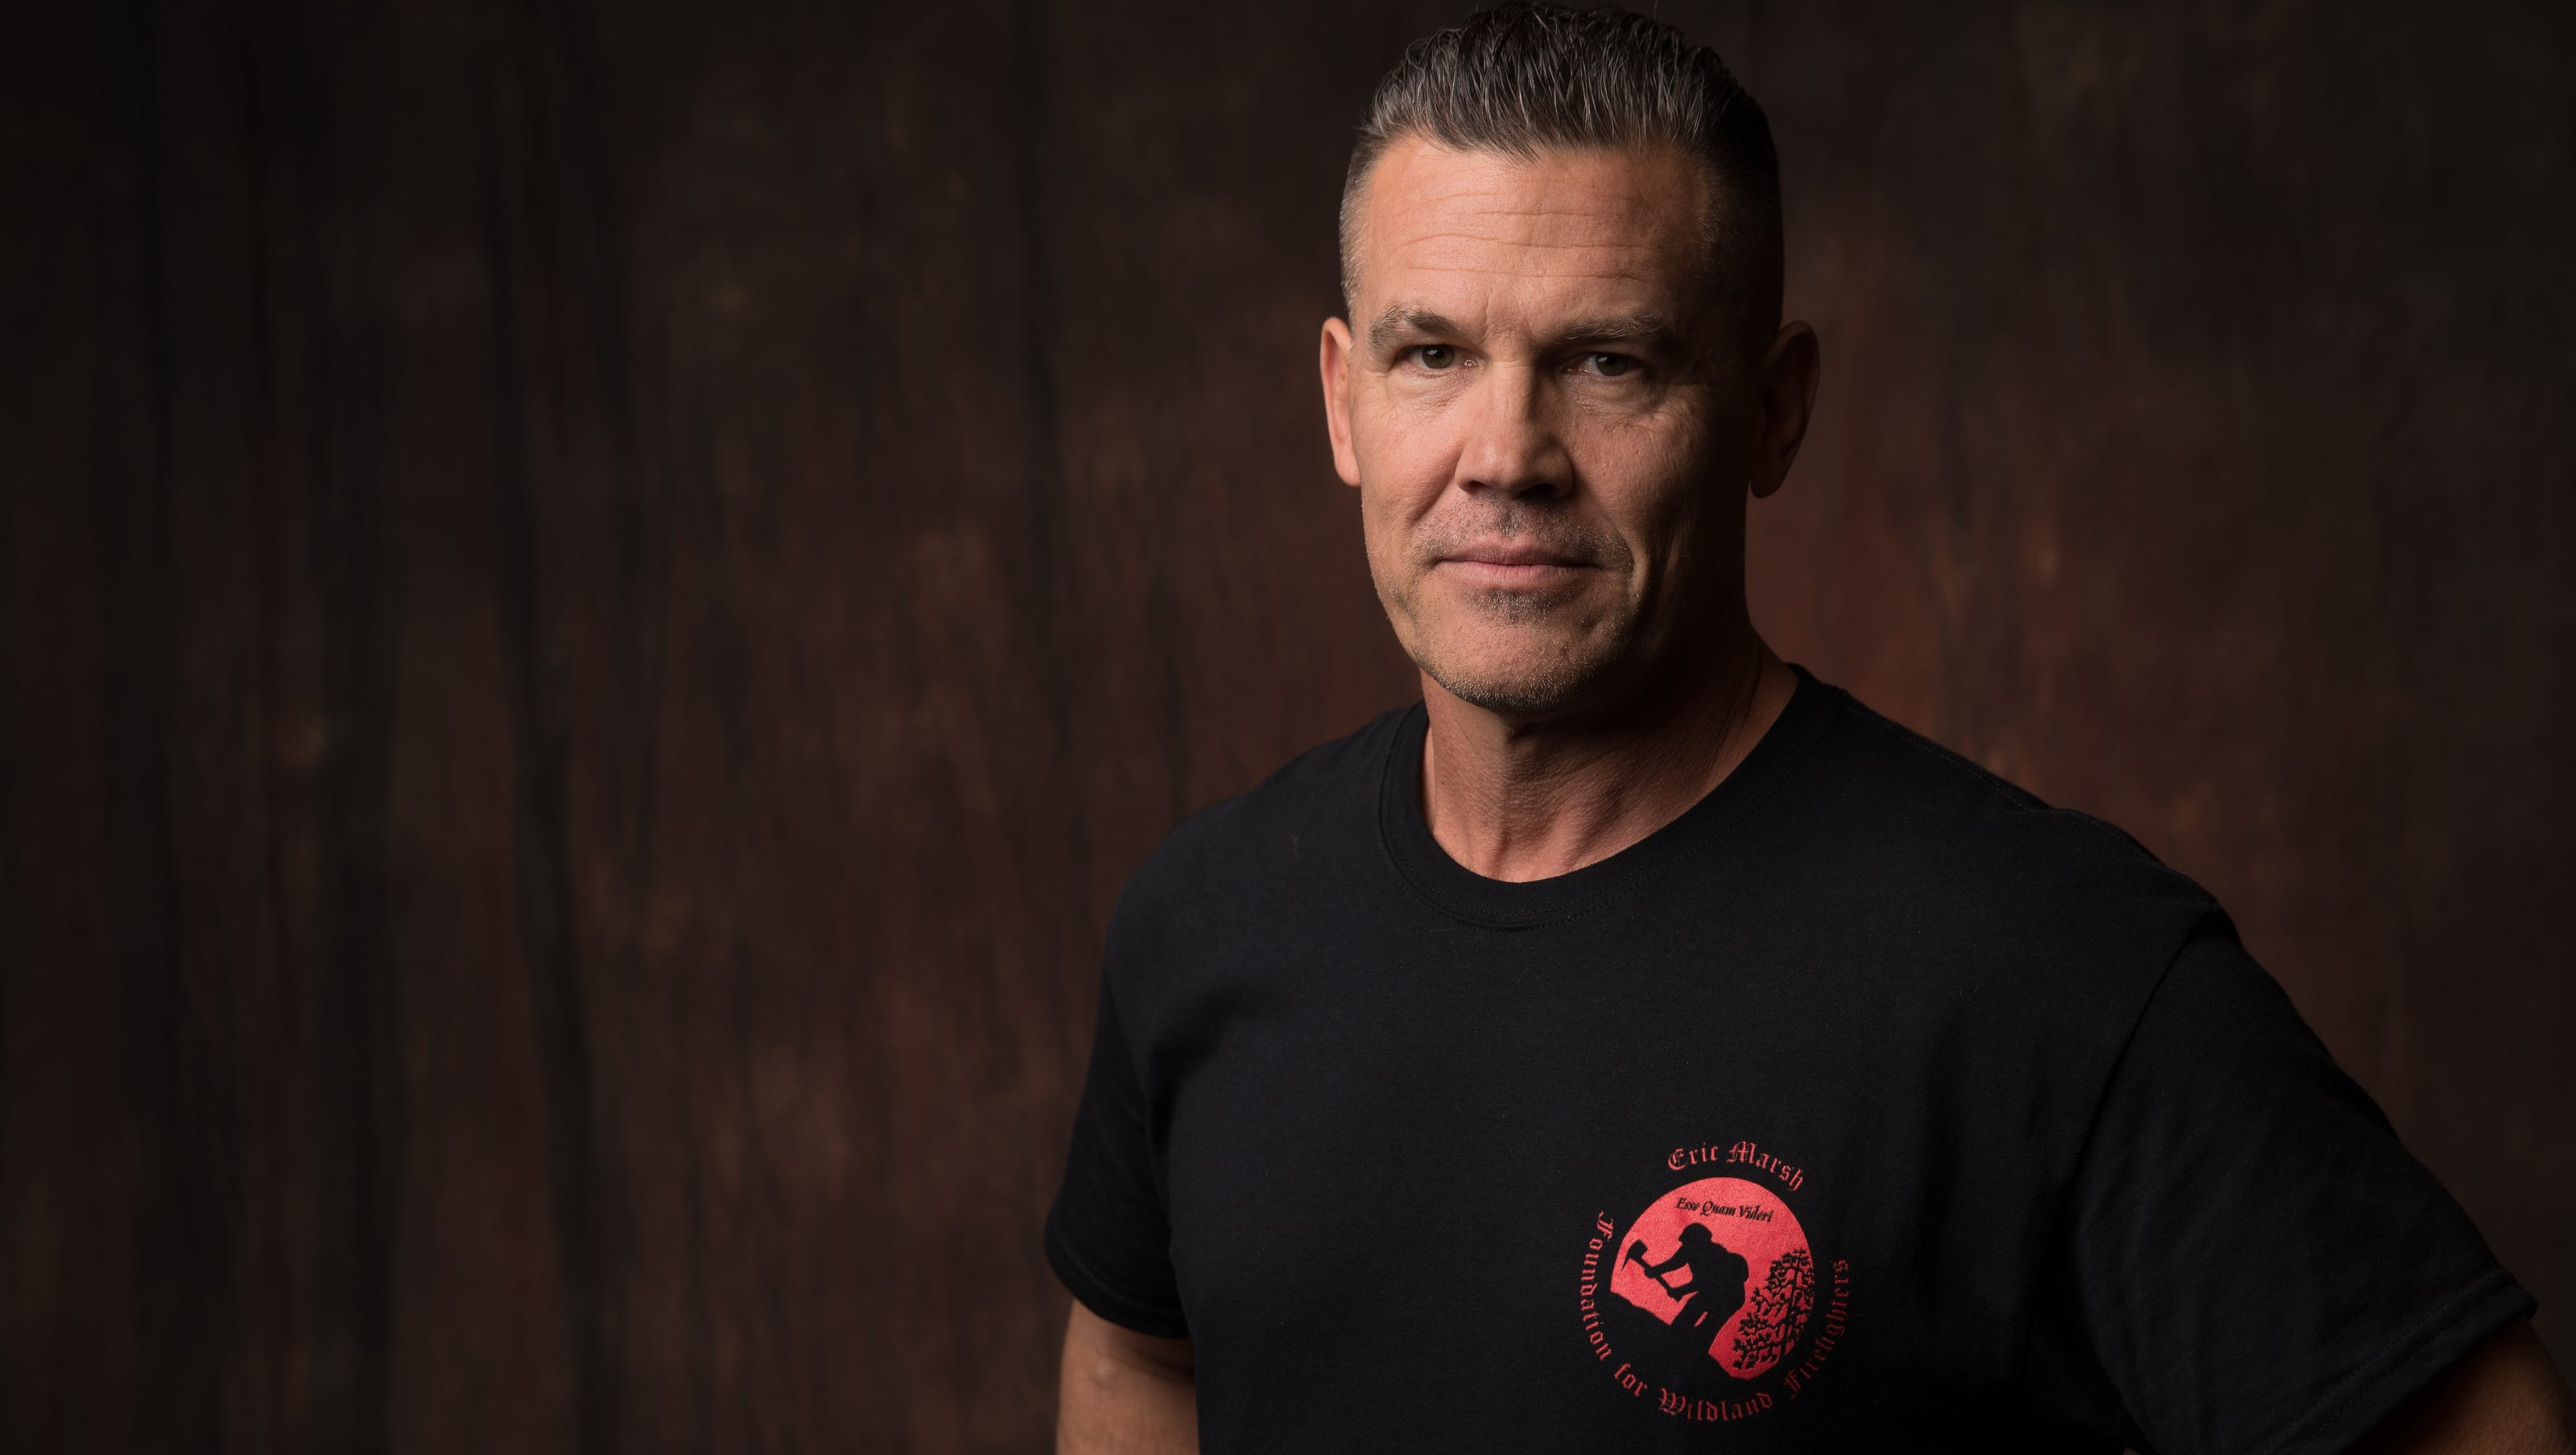 Josh Brolin brings heat as a heroic firefighter in ly the Brave